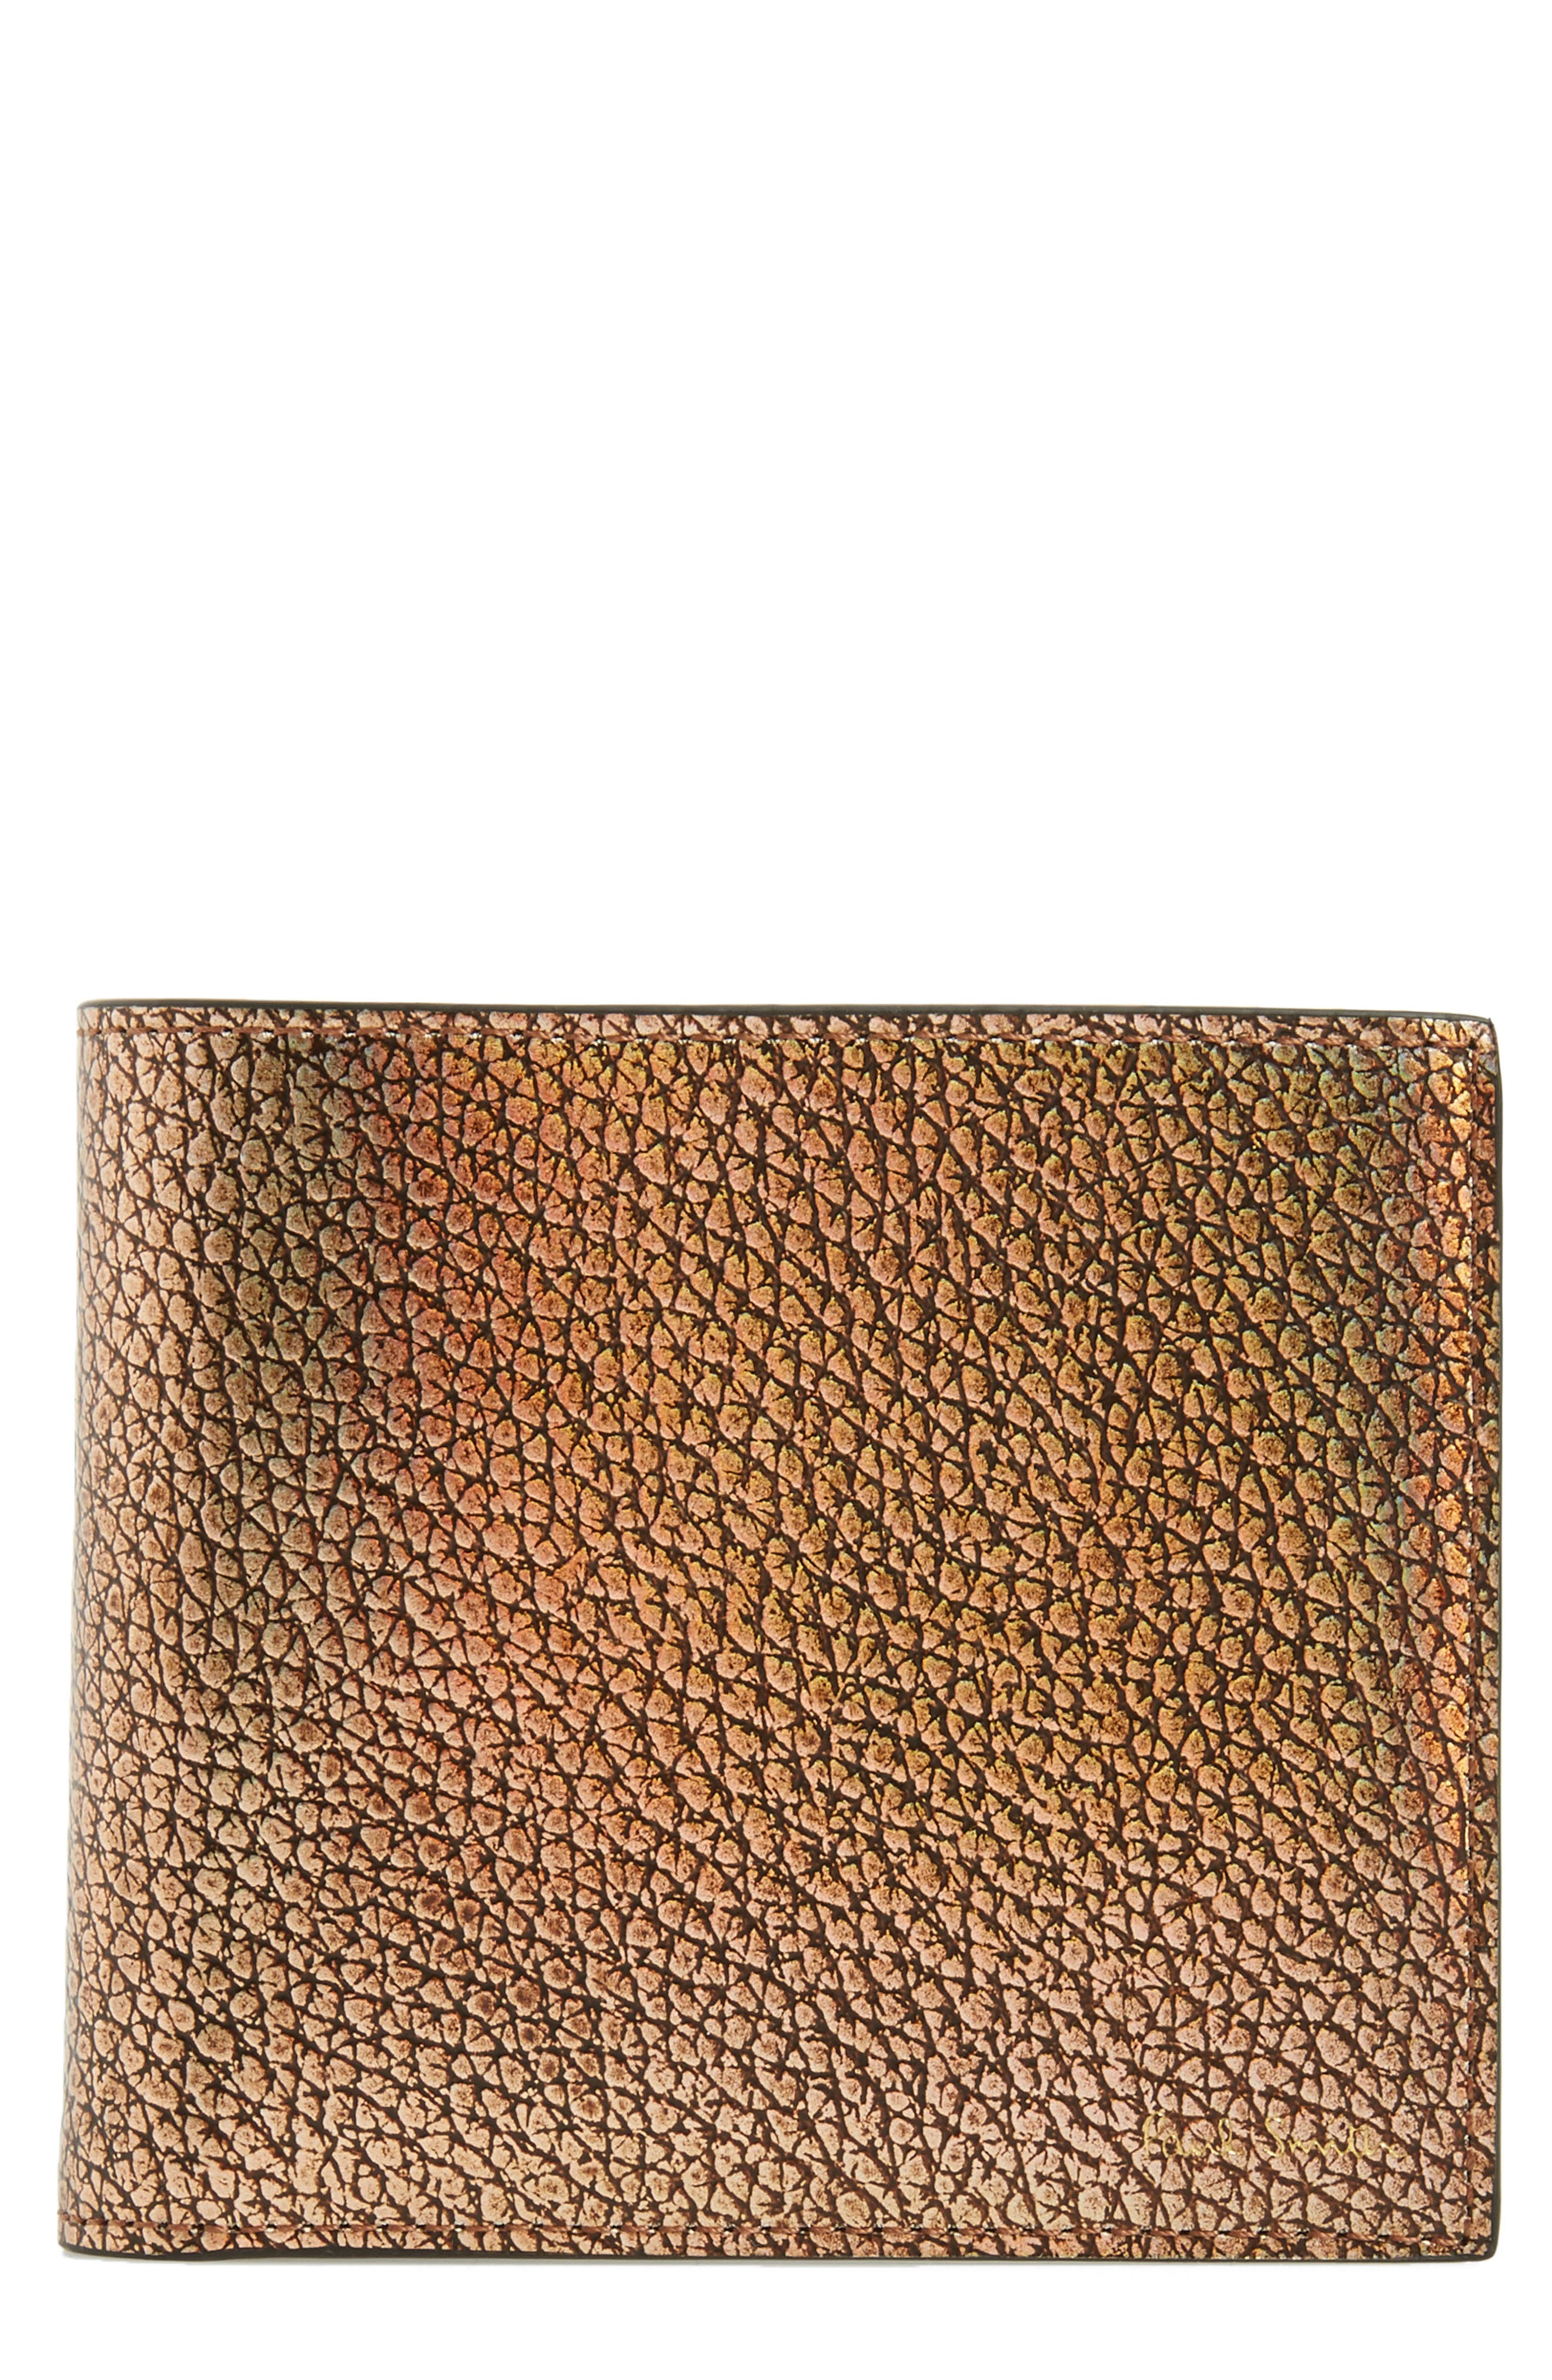 Metallic Leather Wallet,                         Main,                         color, 710